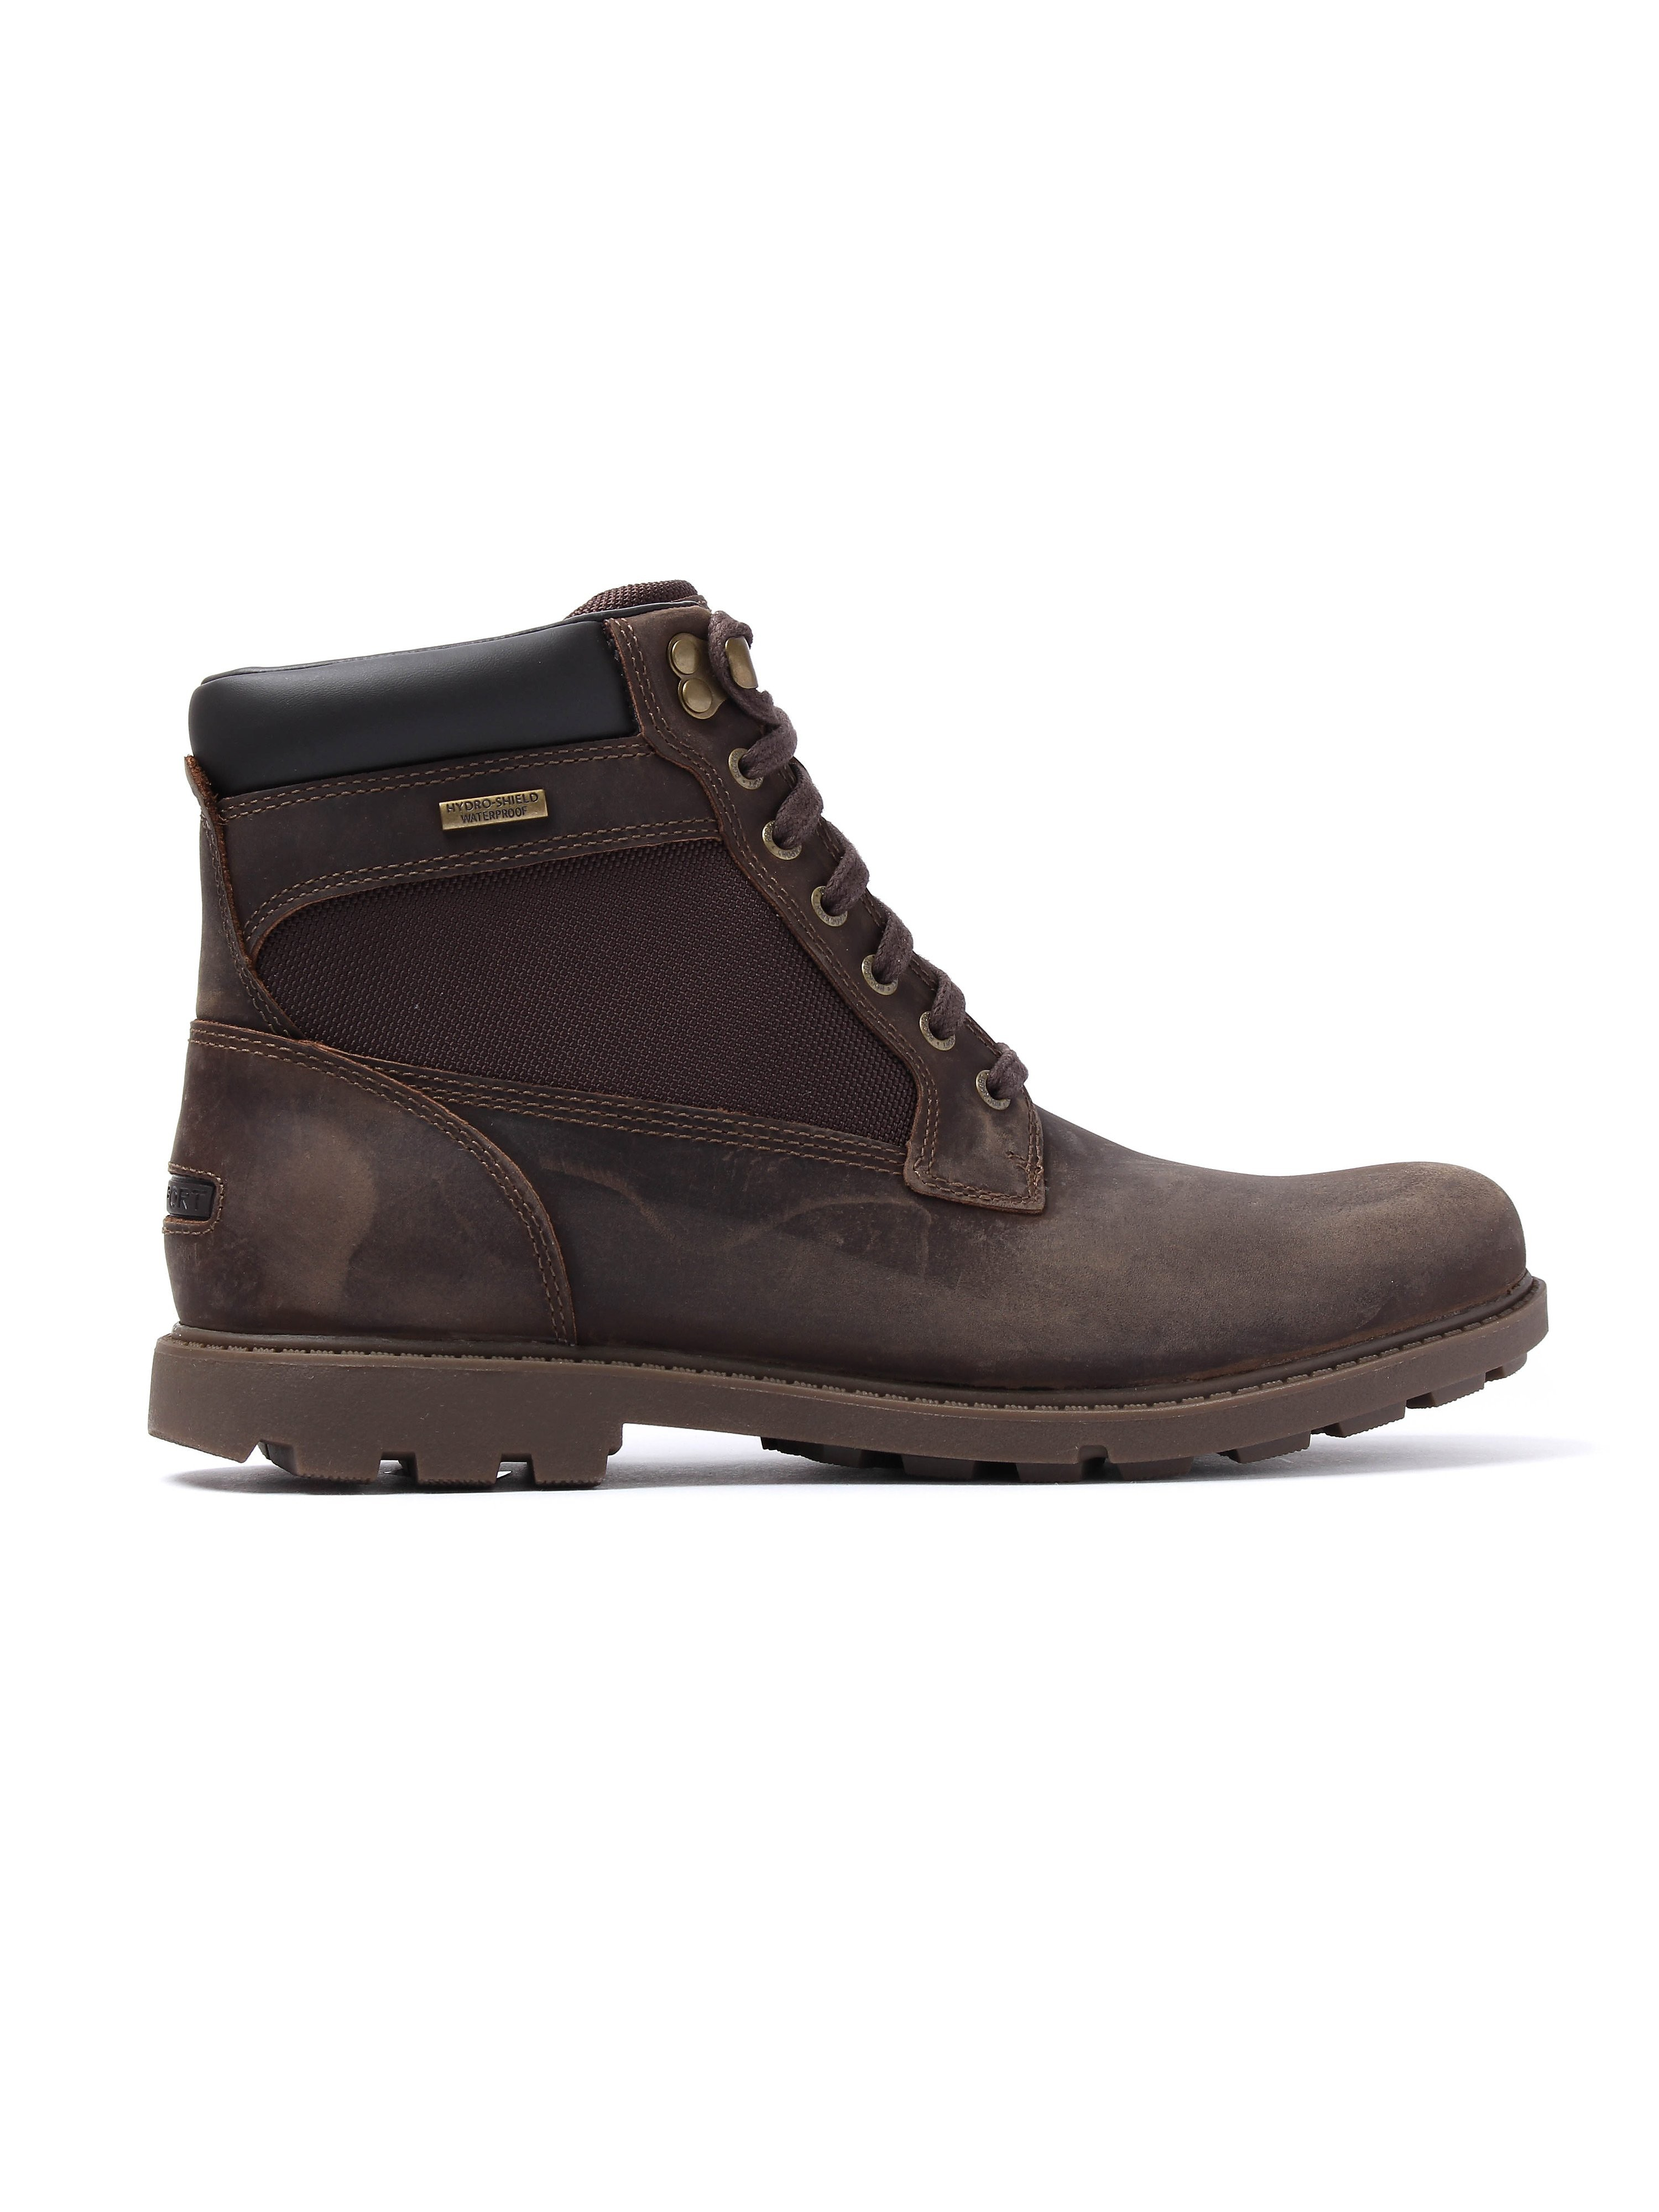 Rockport Rugged Bucus WP High Boot - Dark Brown